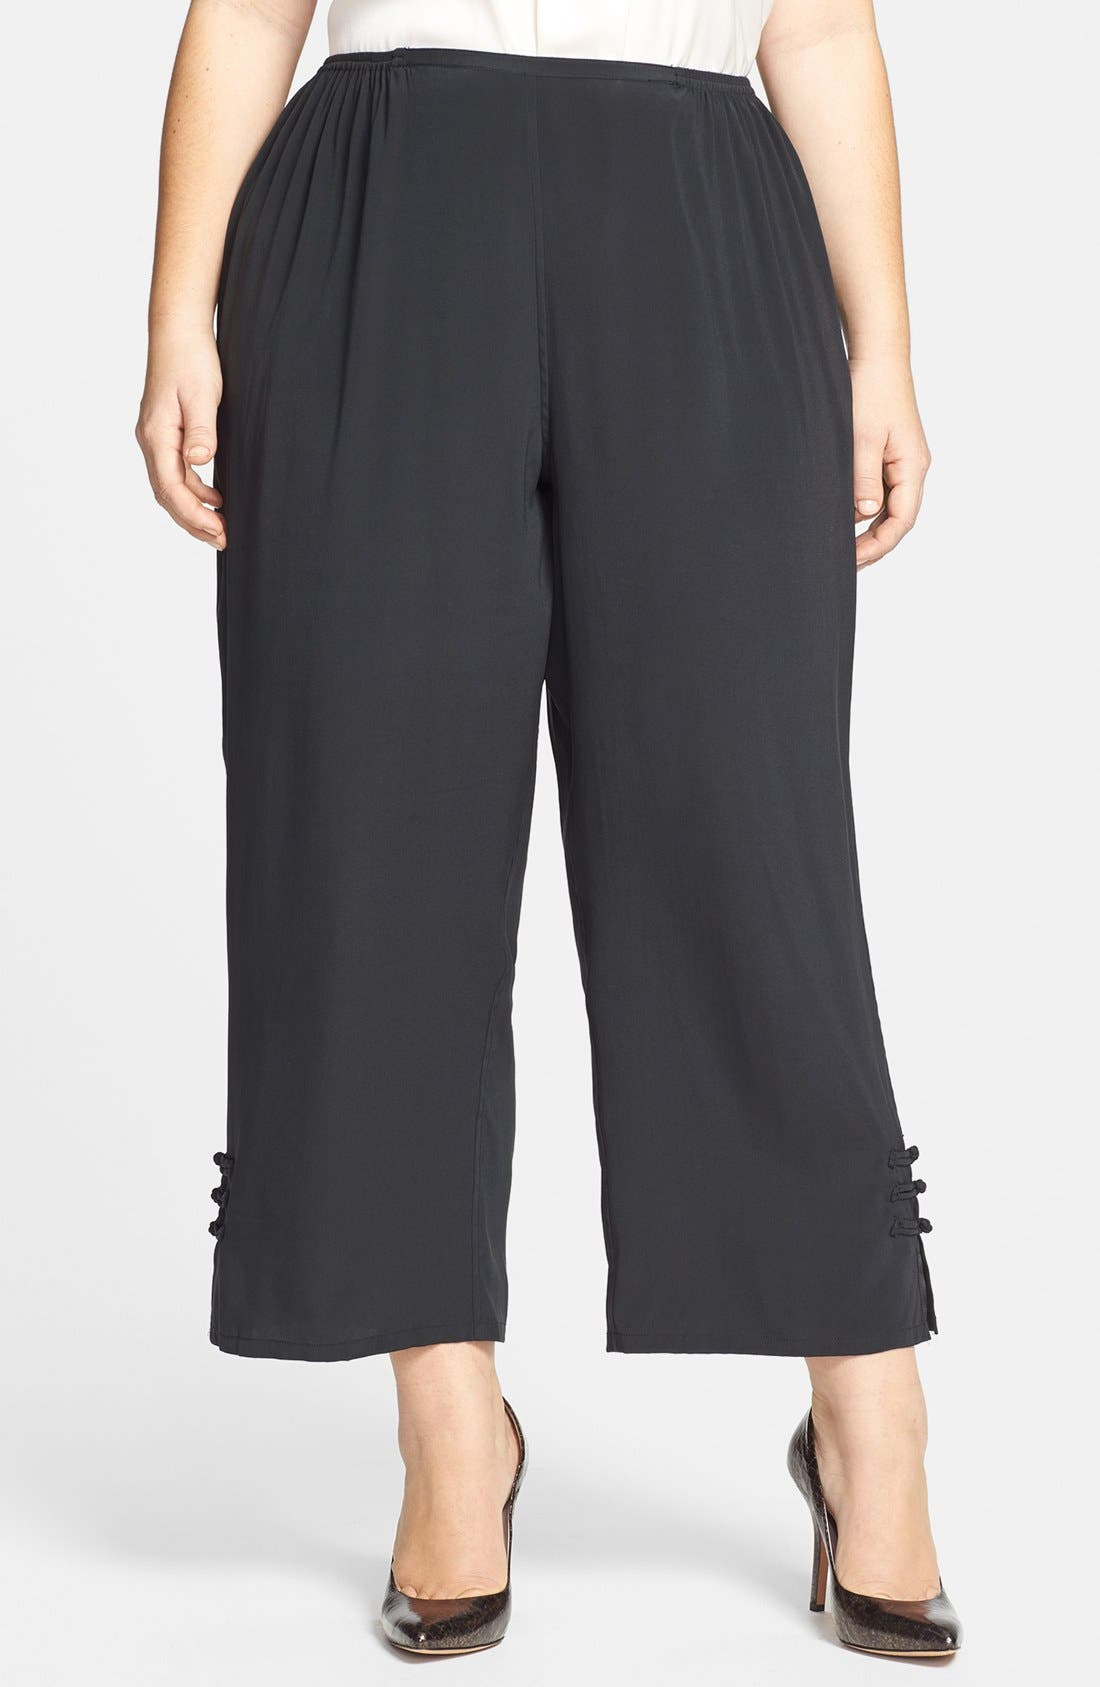 Alternate Image 1 Selected - Citron Ankle Pants (Plus Size)